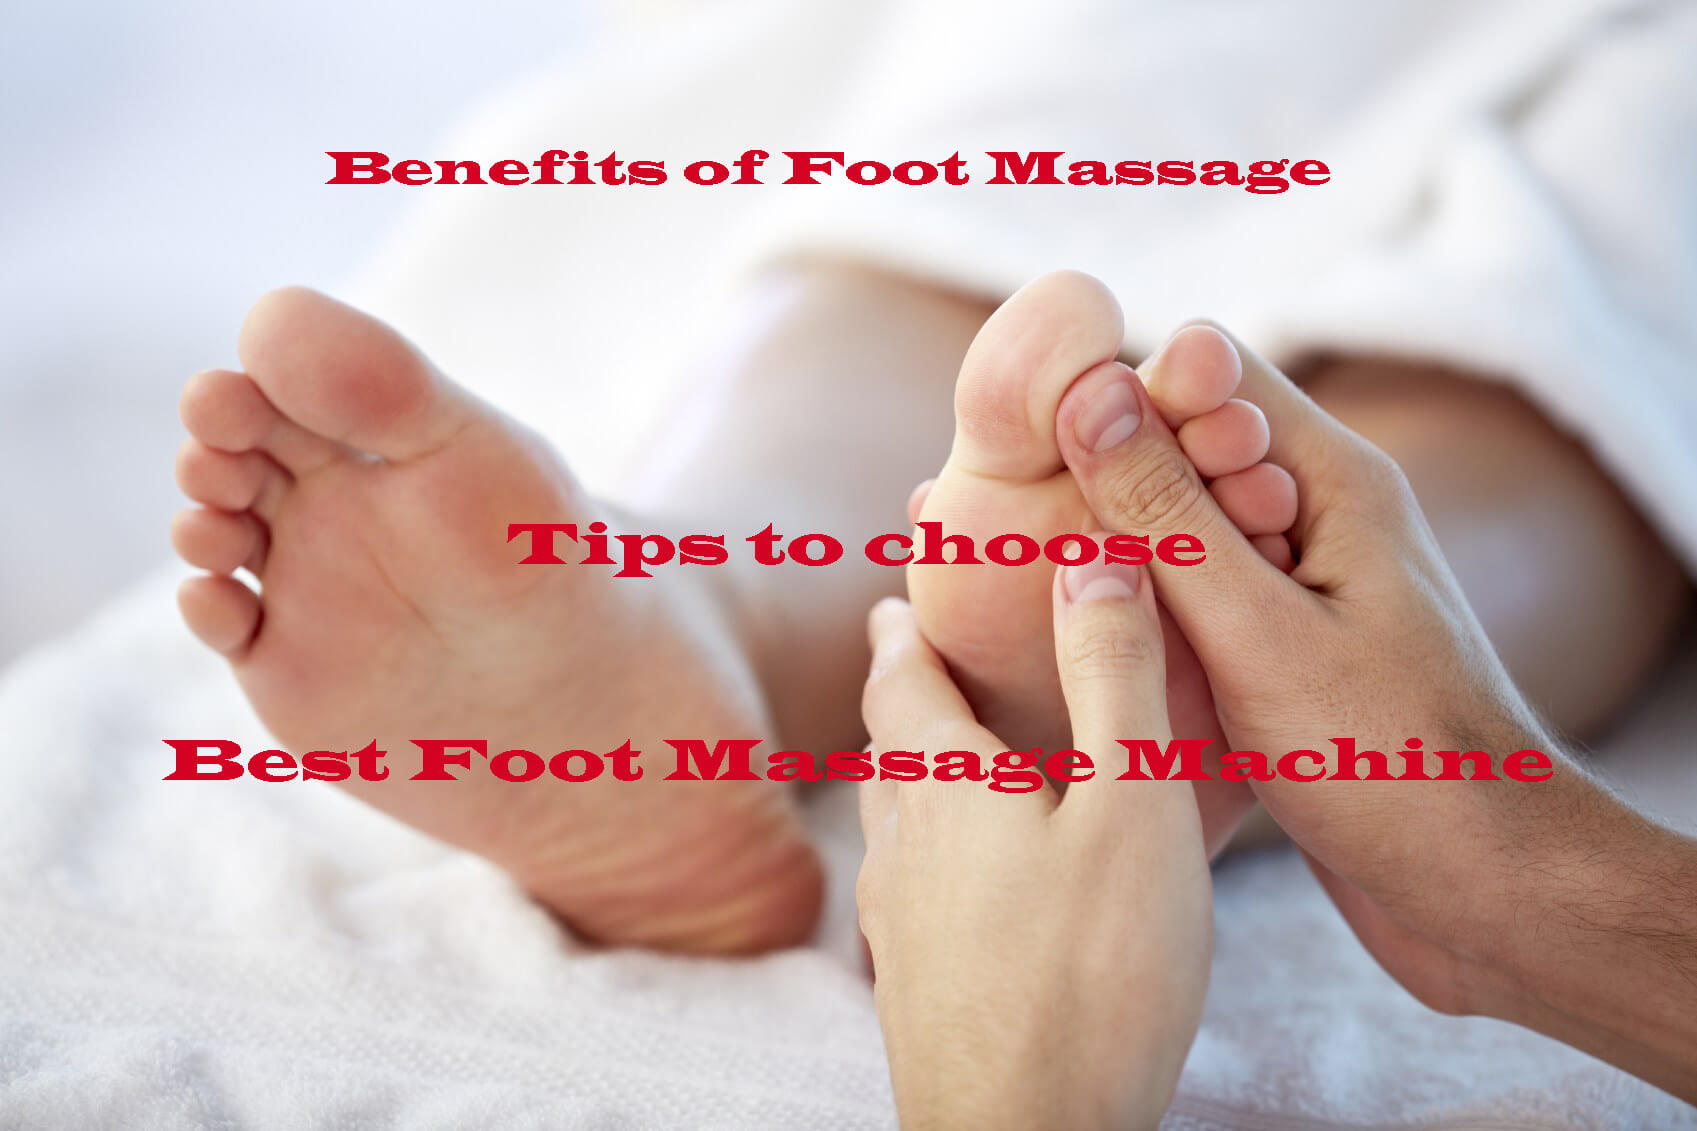 Tips to Choose Best Foot Massage Machine 2017